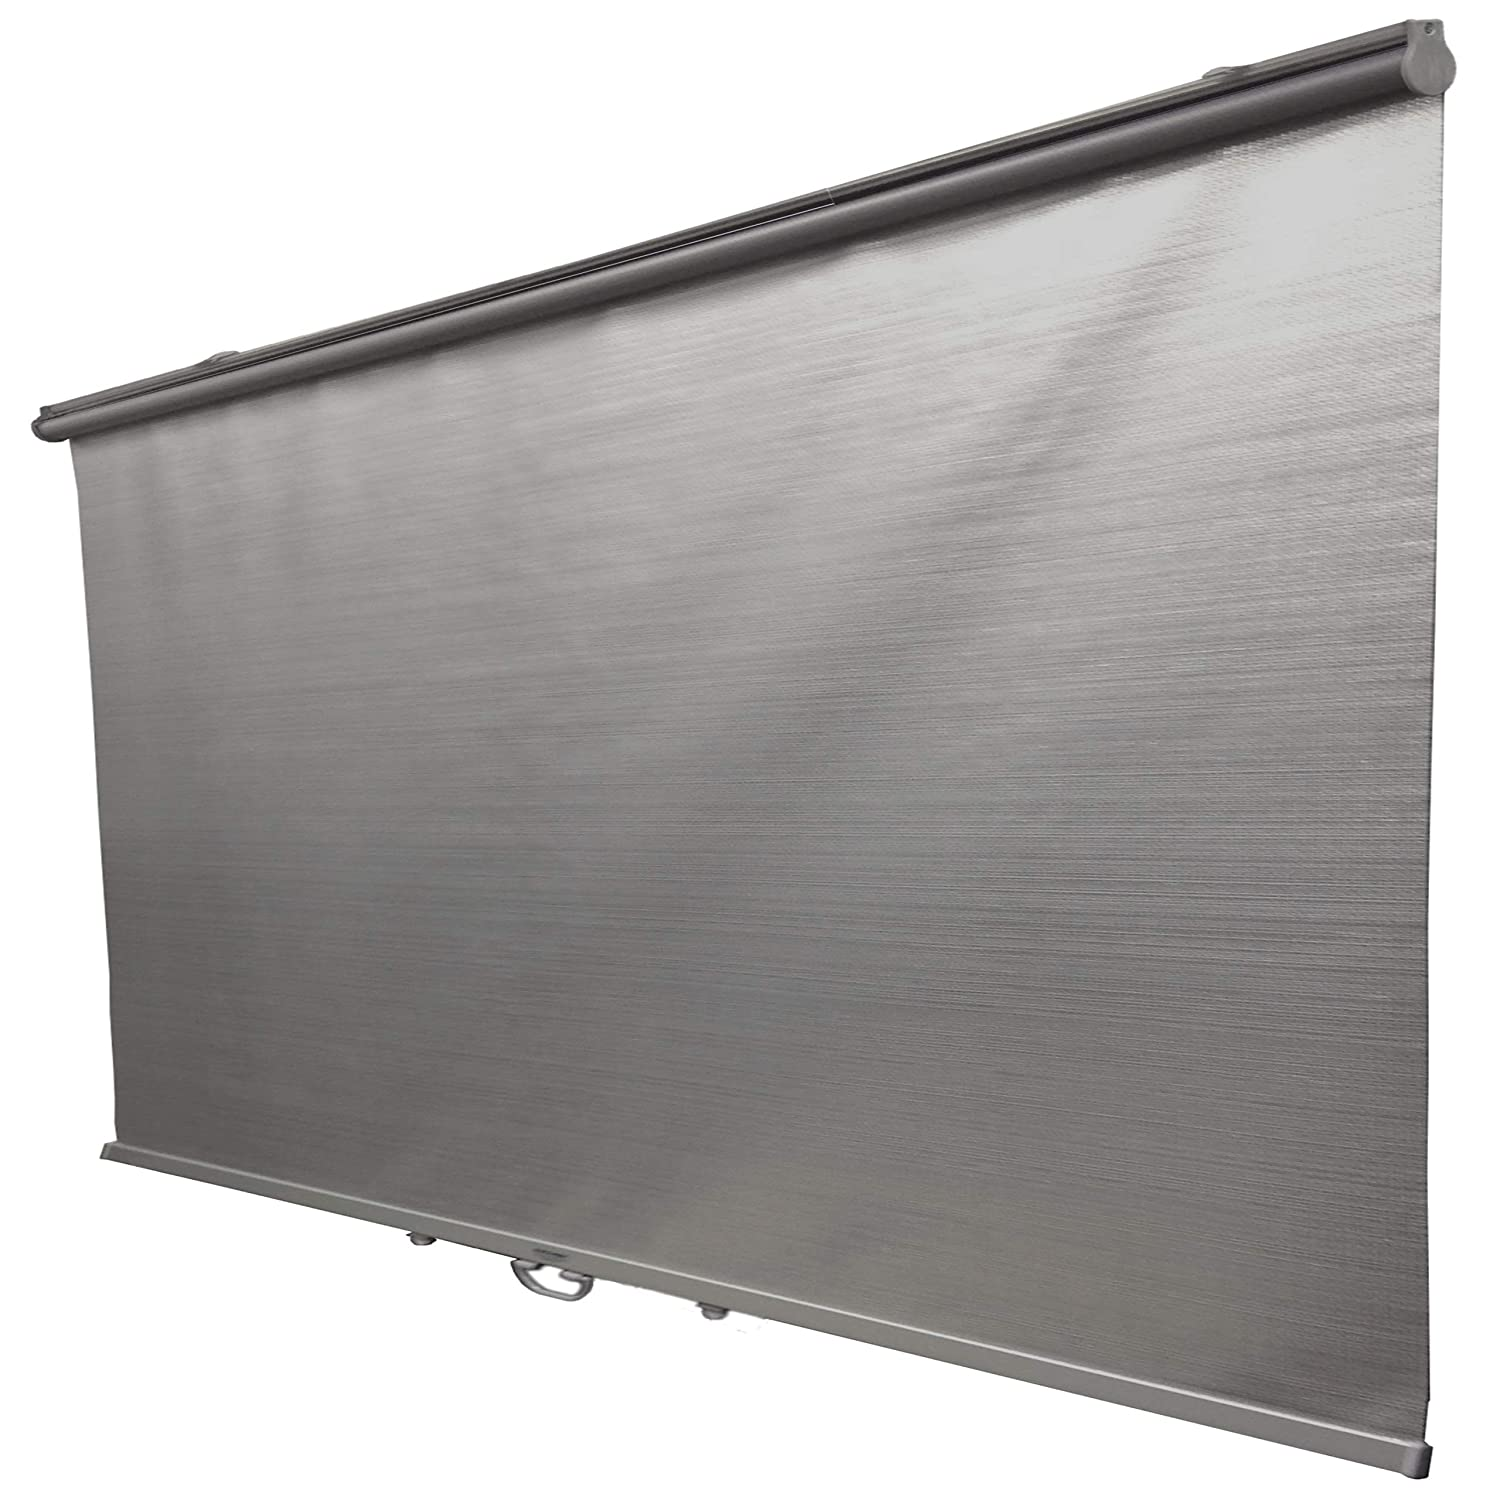 Econofrost 9600 Series OEM/Non- Cassette • 4 Foot • Attaches Inside Canopy of Upright Multi-Deck Refrigerated Display Cases • Ideal to Specify in New Equipment Purchases